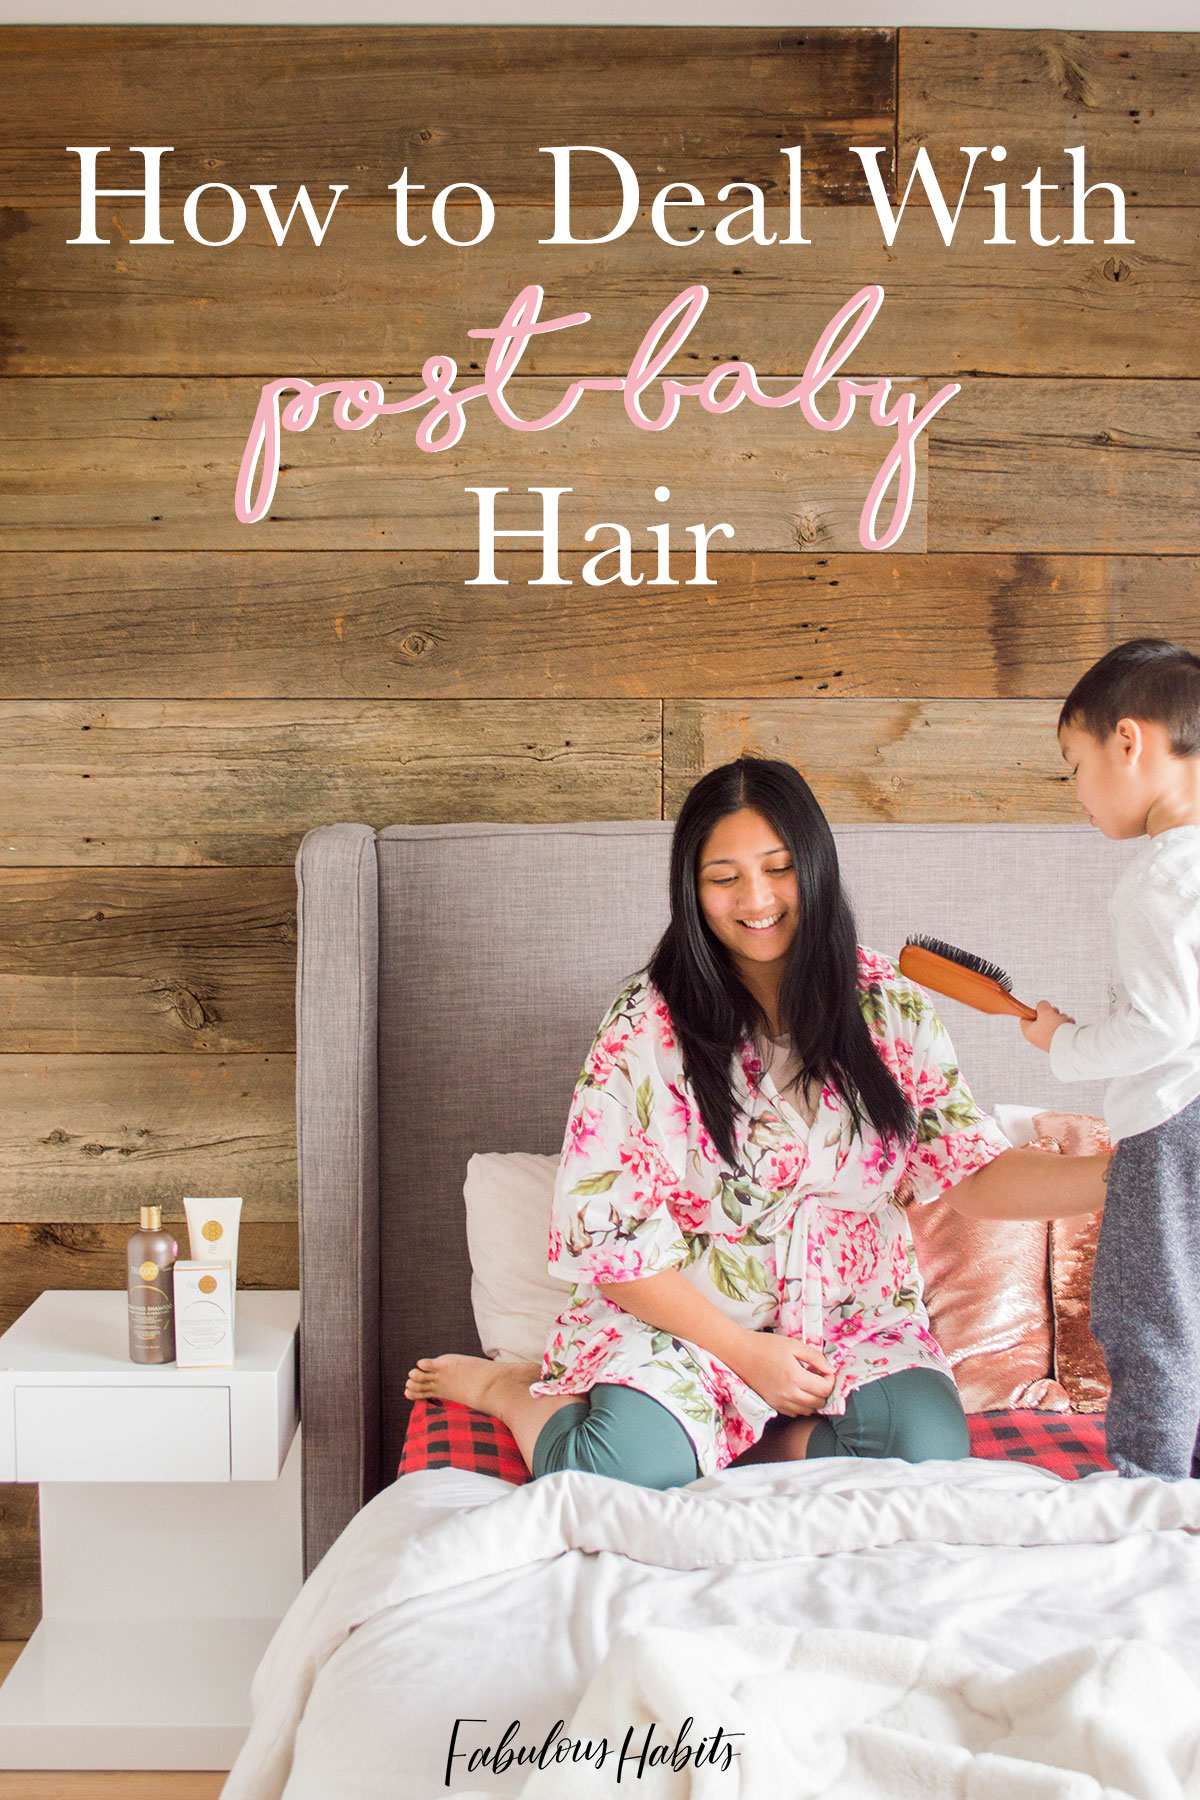 My hair changed drastically after giving birth - here are my foolproof tips in maintaining healthy hair, even after having a baby! #healthyhair